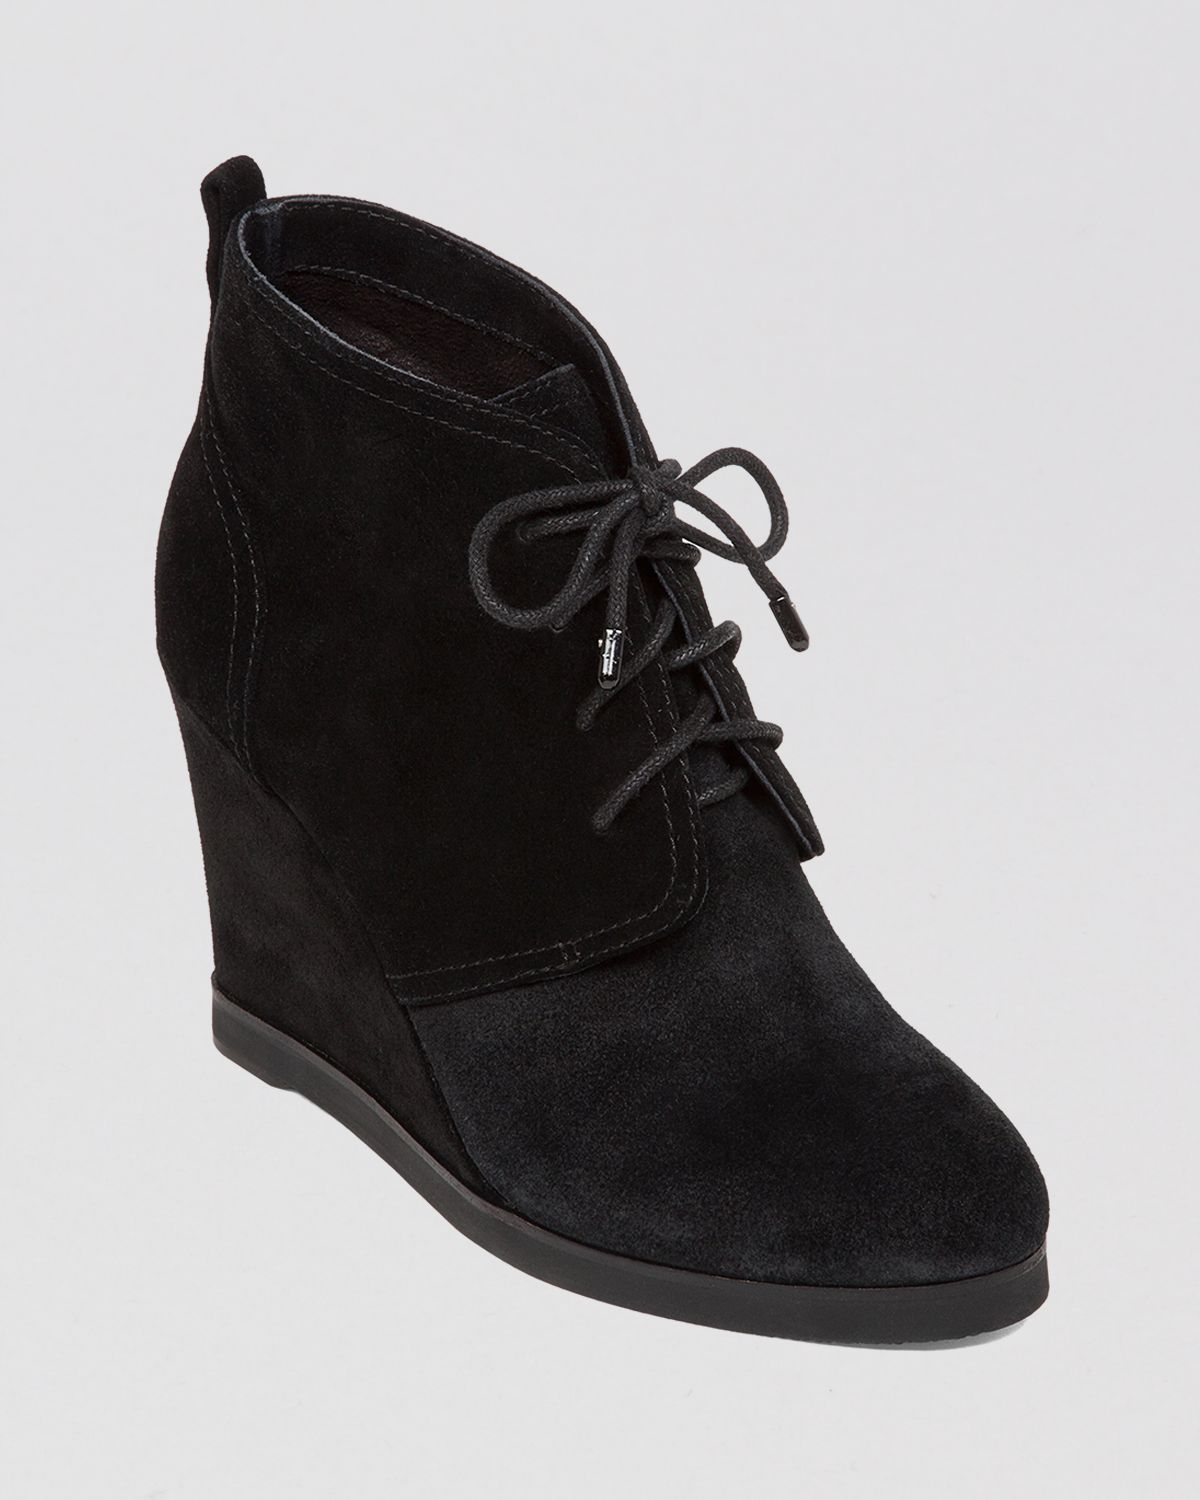 Vince Camuto Lace Up Wedge Booties - Kiotio in Black